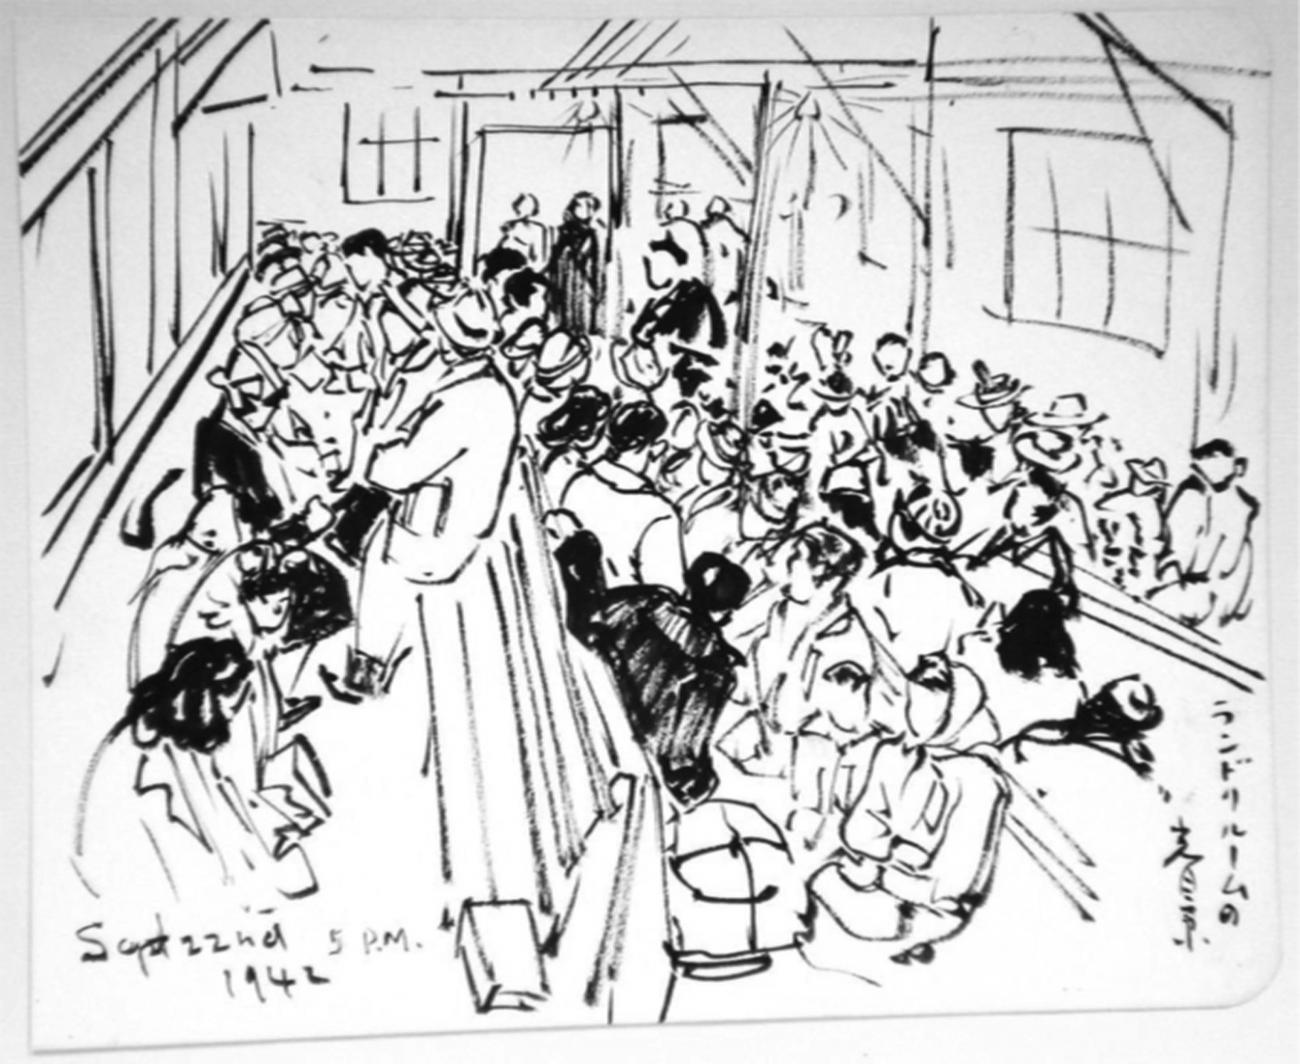 A contour drawing of people gathered inside a room.